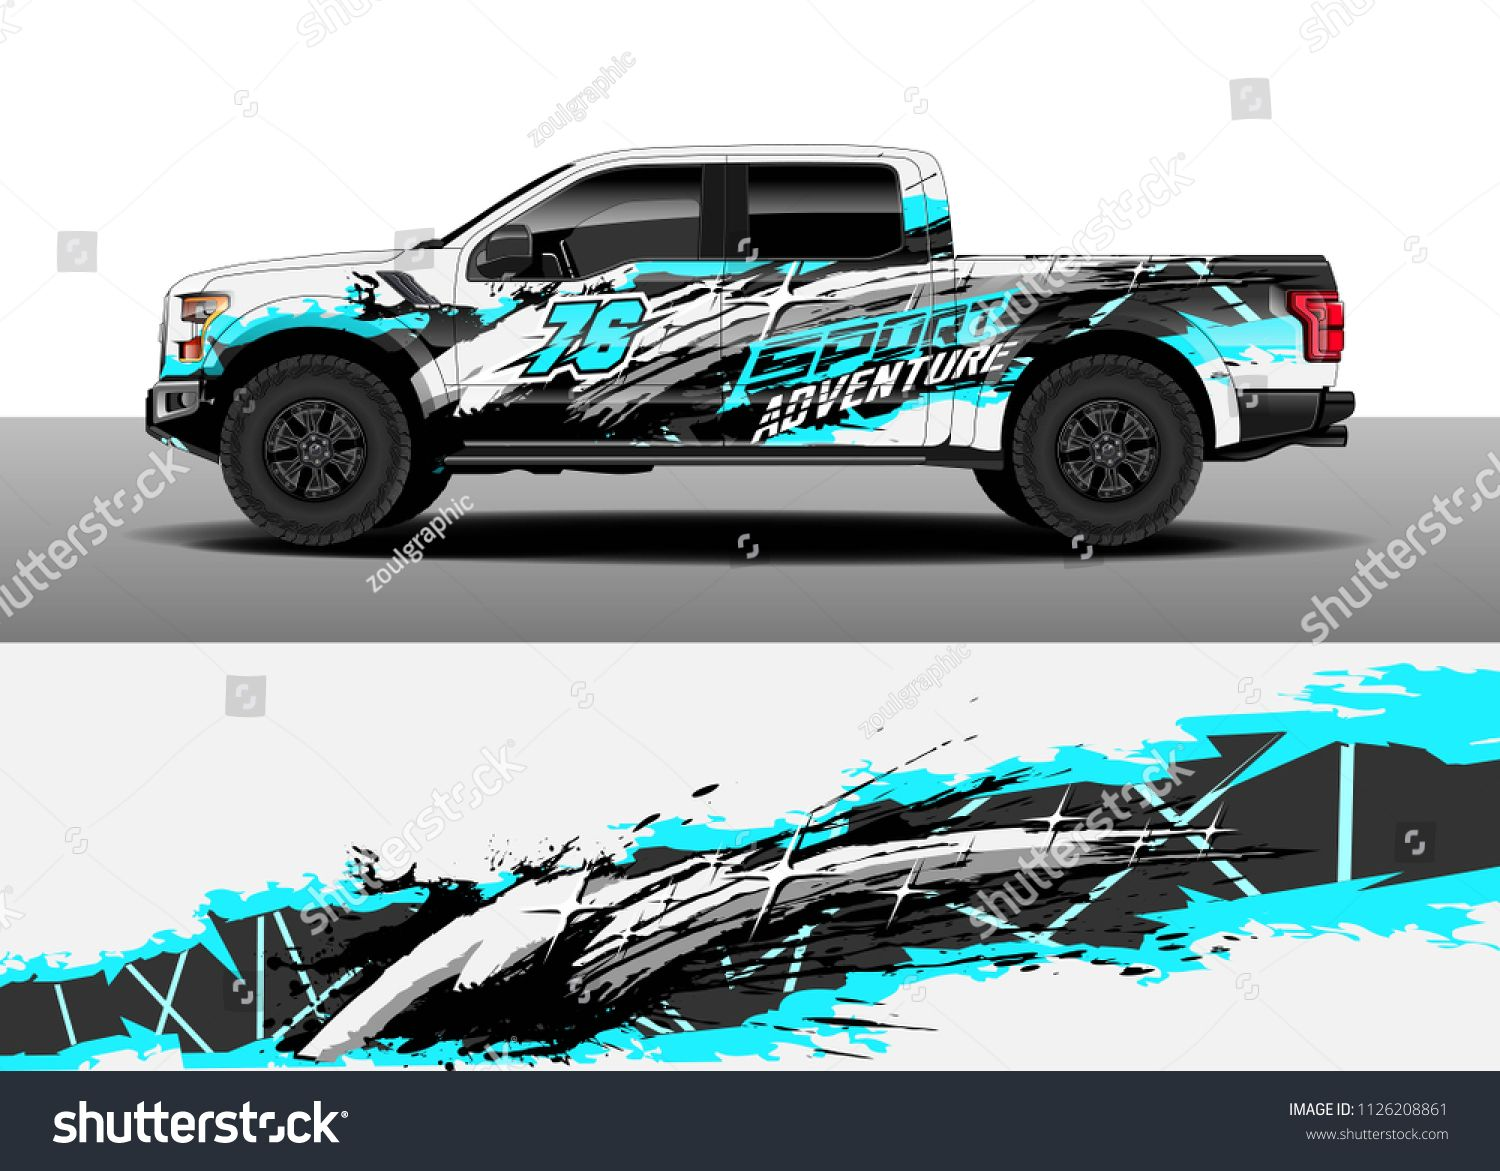 Truck decal cargo van and car wrap vector graphic abstract grunge stripe designs for